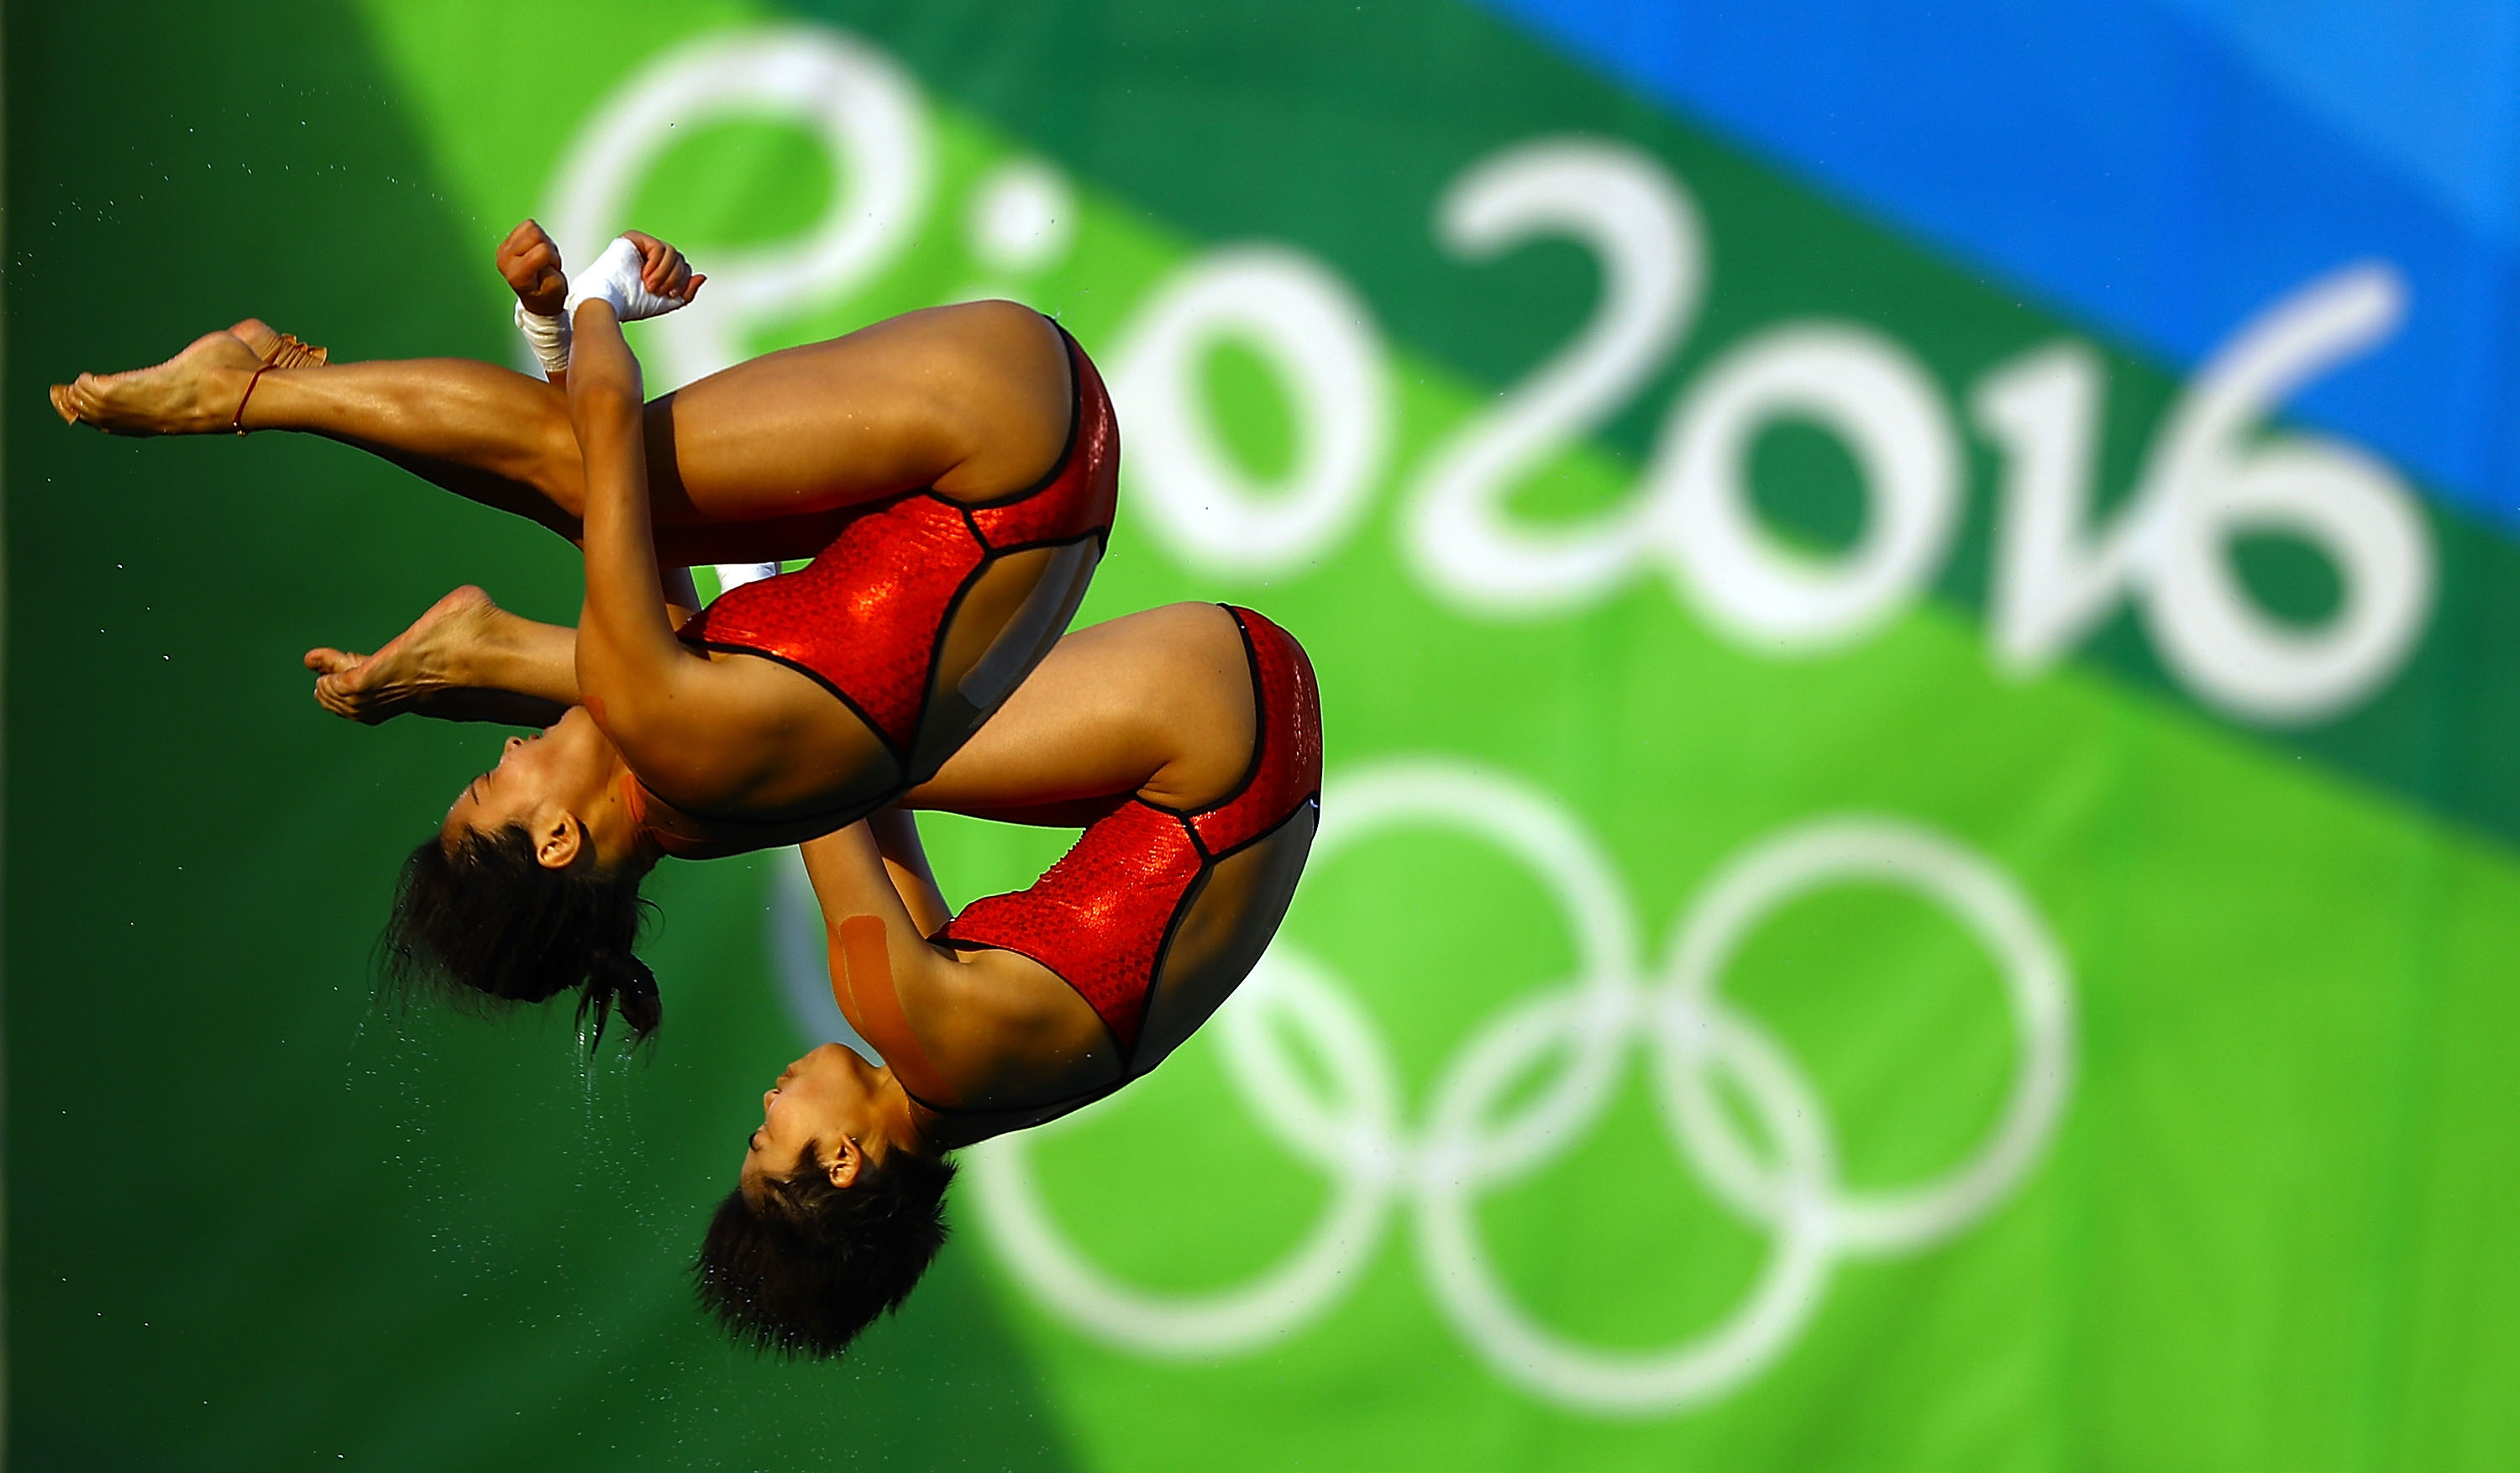 Diving - Olympics: Day 4